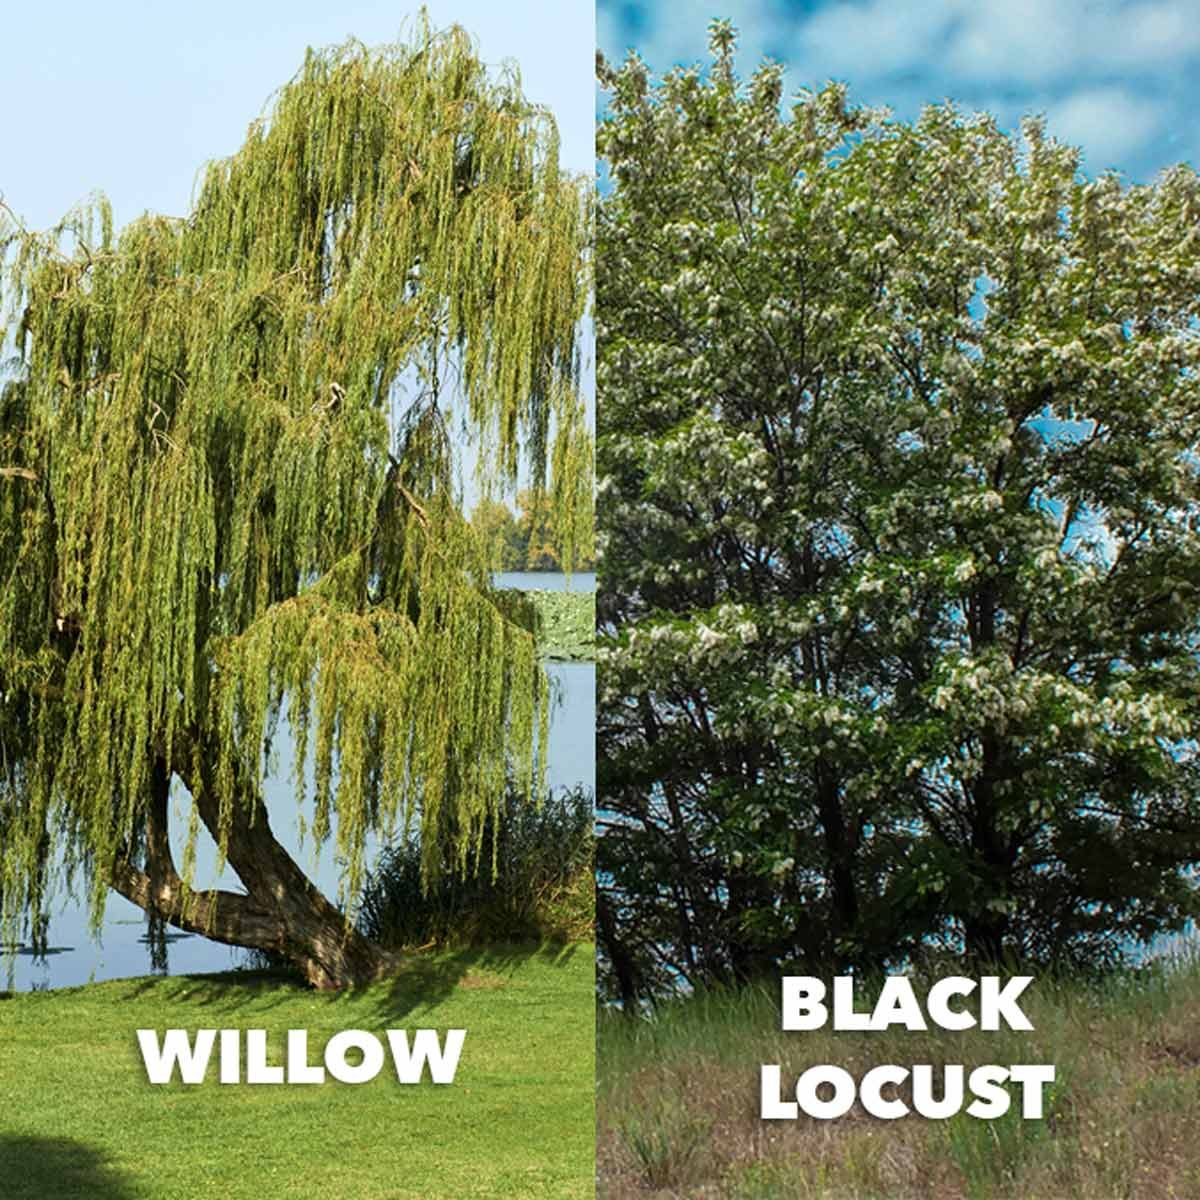 willow vs black locust comparison